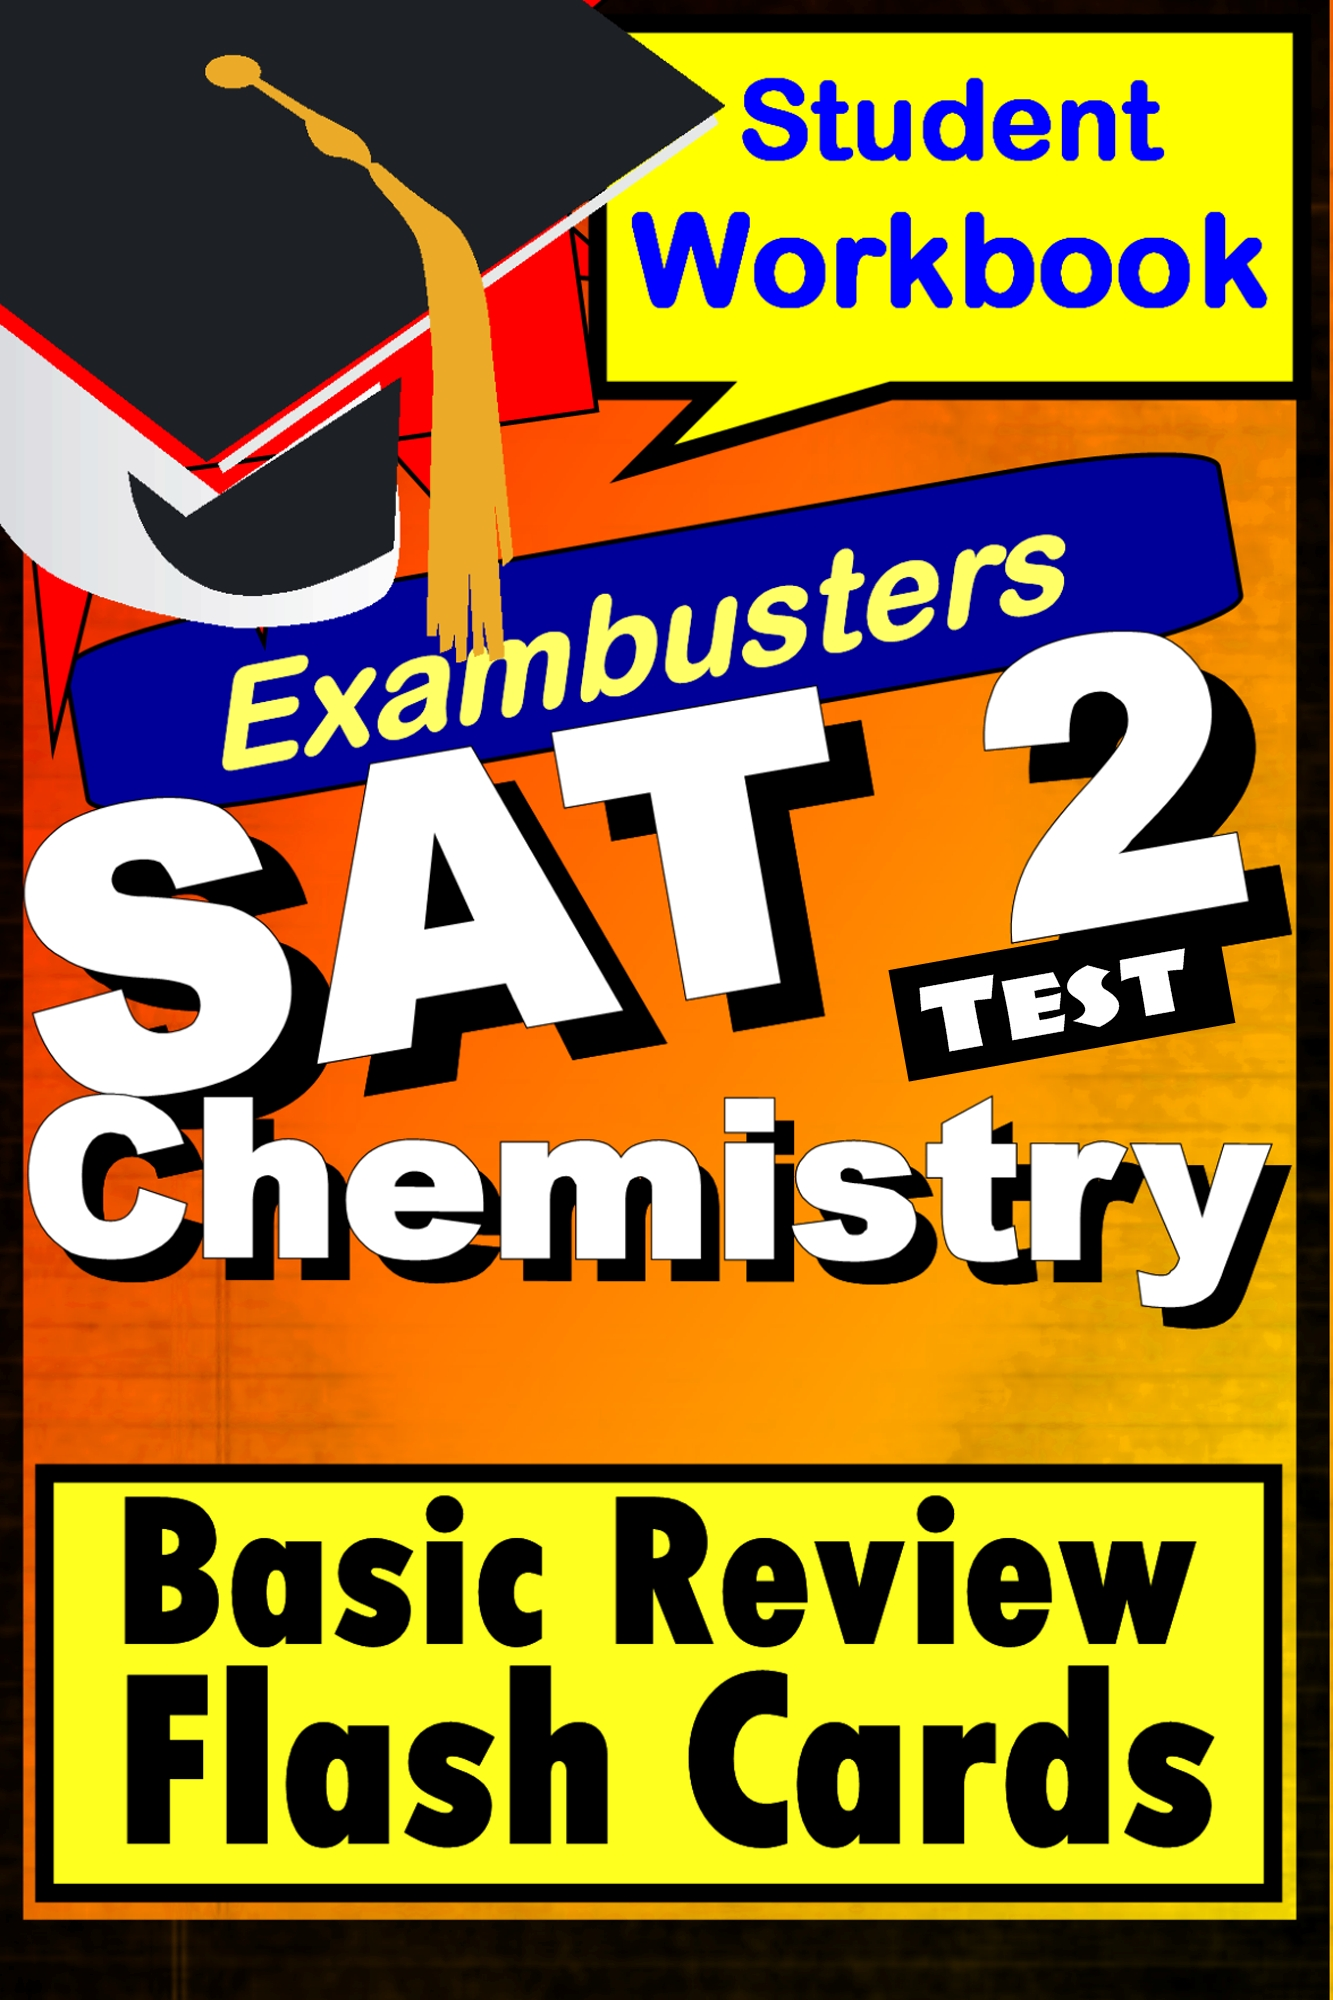 SAT 2 Chemistry Test--Exambusters Flashcards